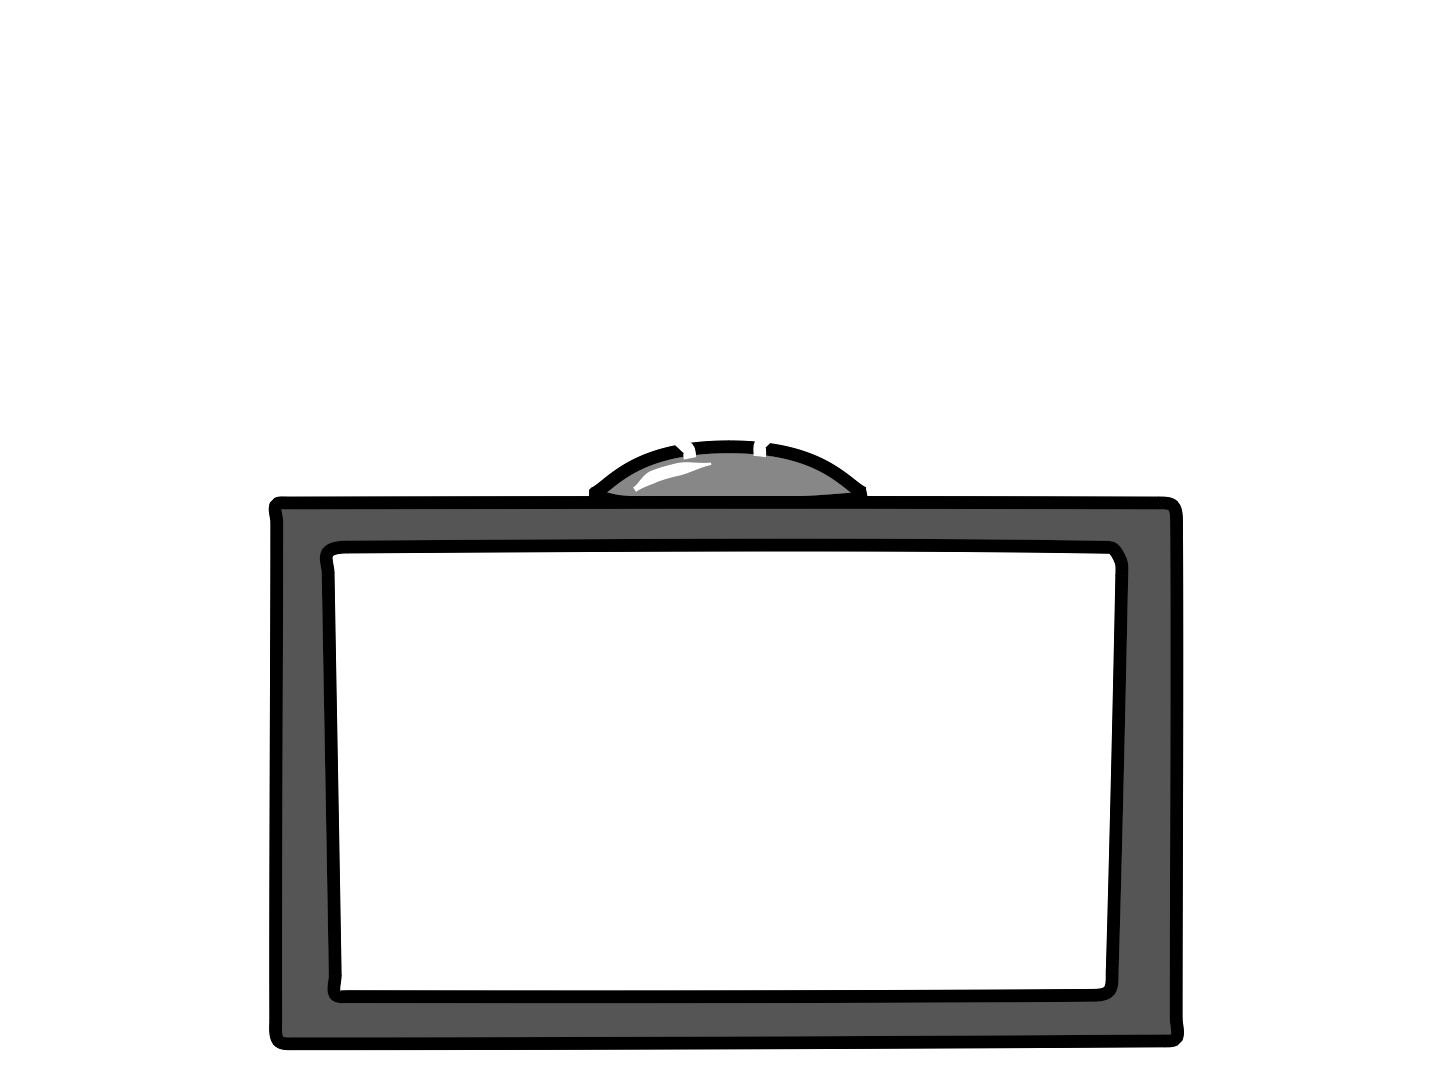 Clipart tv classic tv. Television backgrounds group free